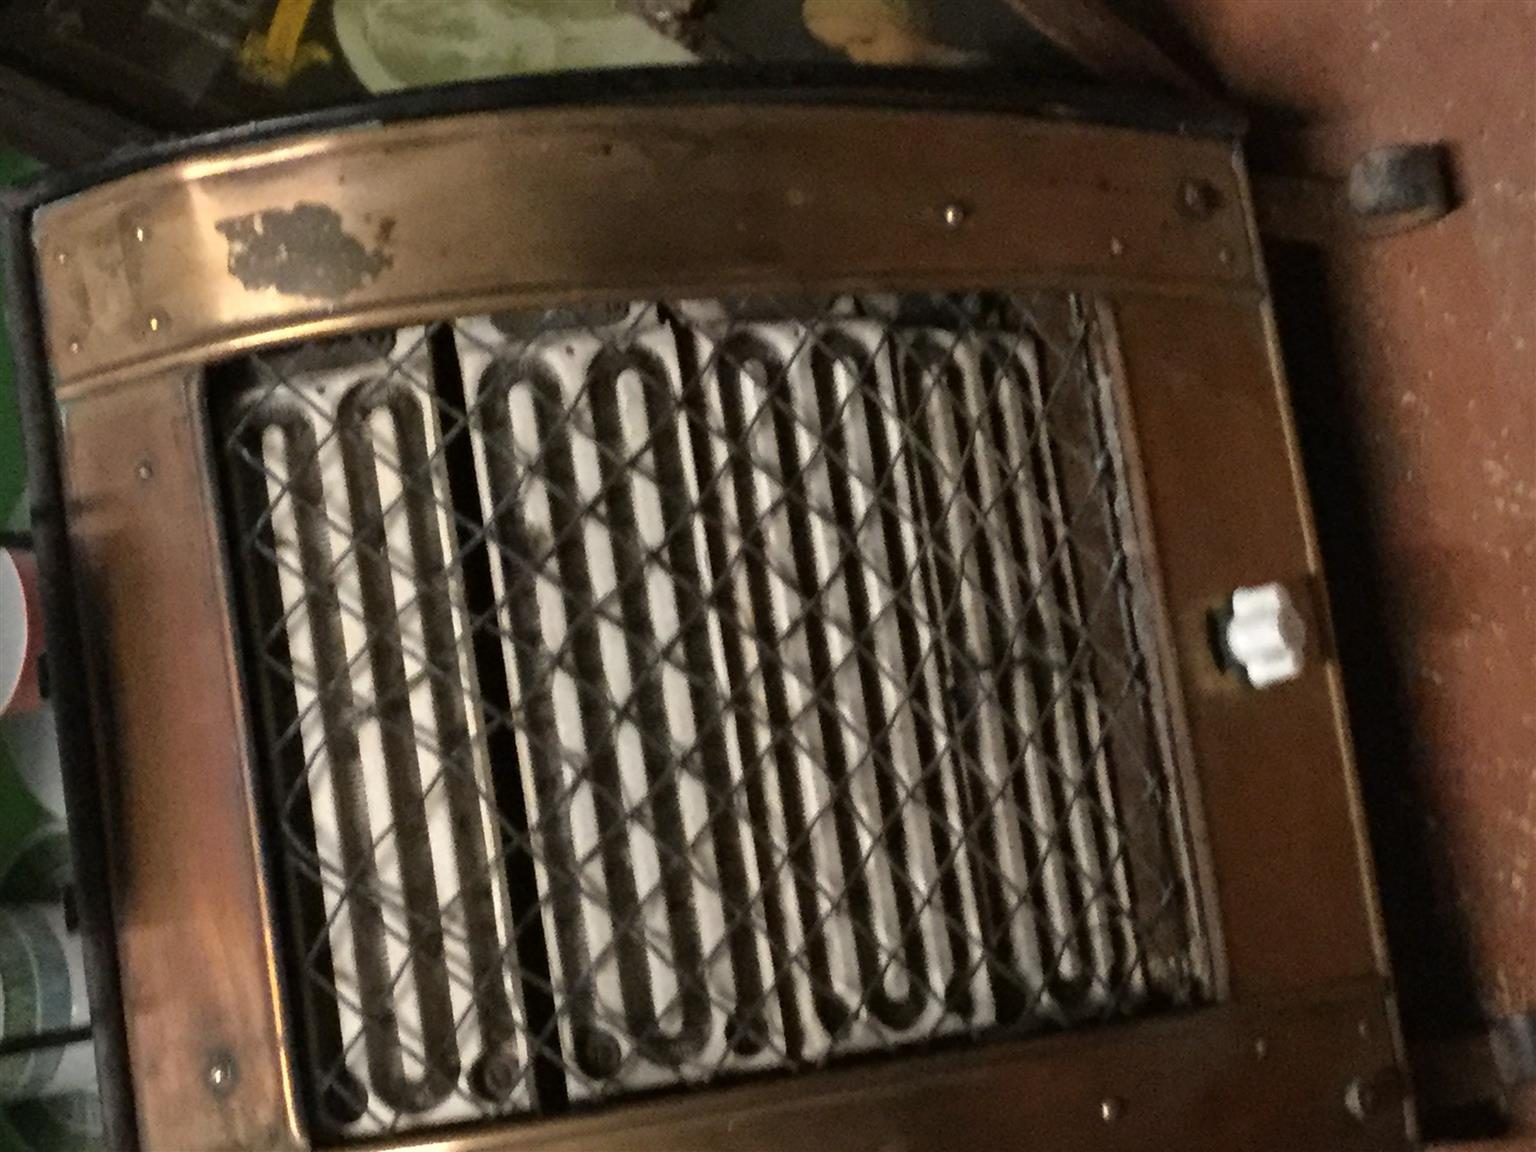 Antique heatsr in copper a delighful piece of history selling as is as you see it